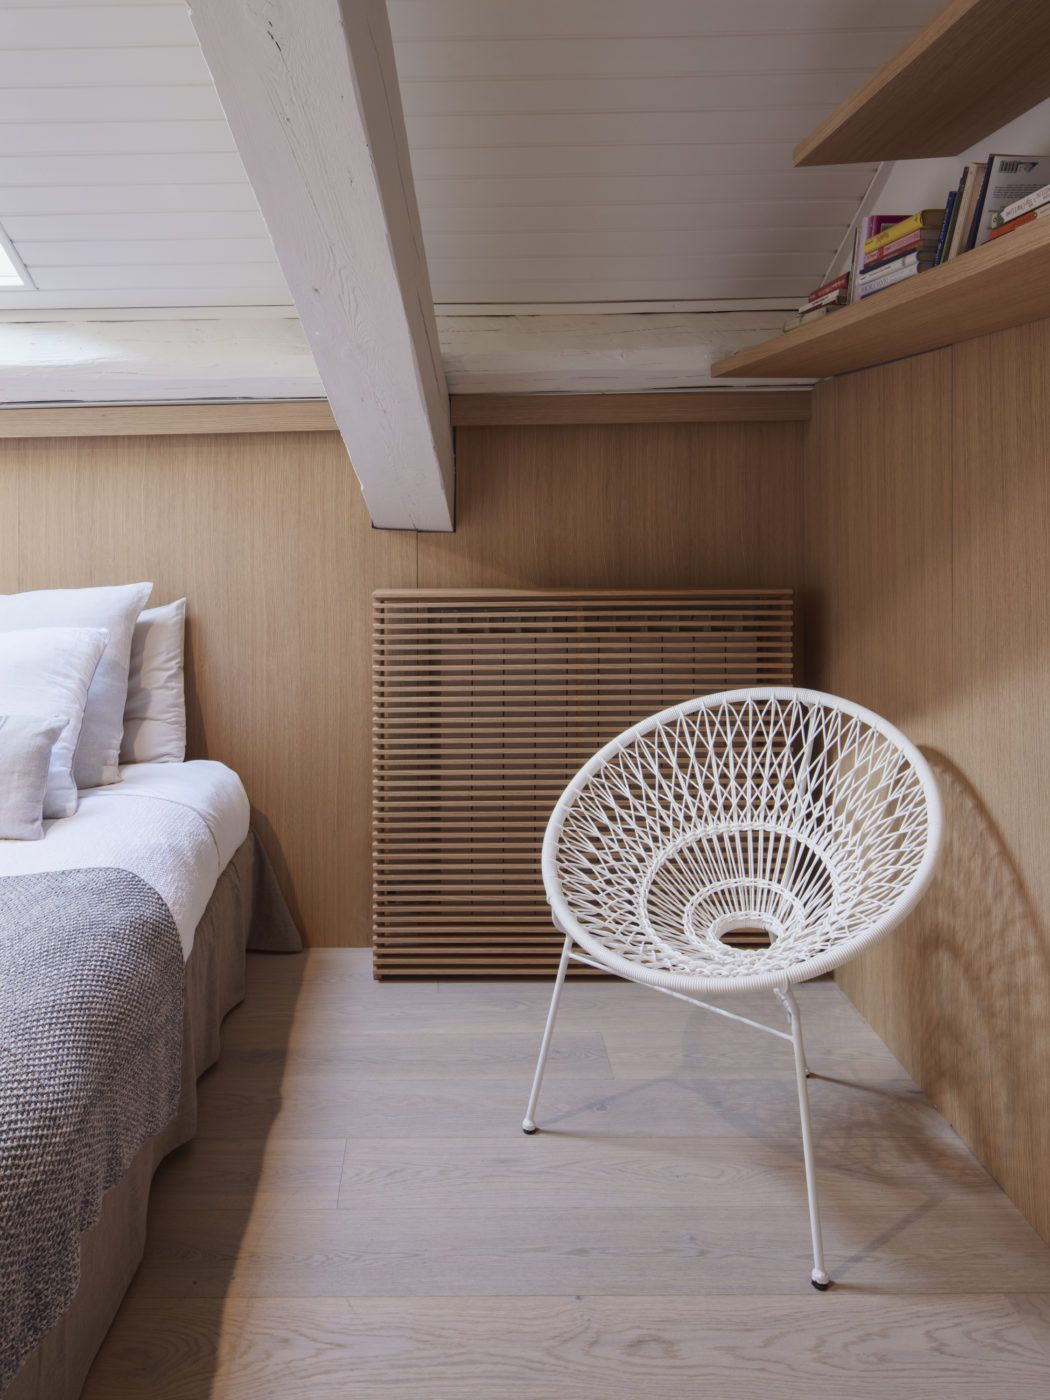 Home Design Busto Arsizio apartment in busto arsizio by archiplan (with images